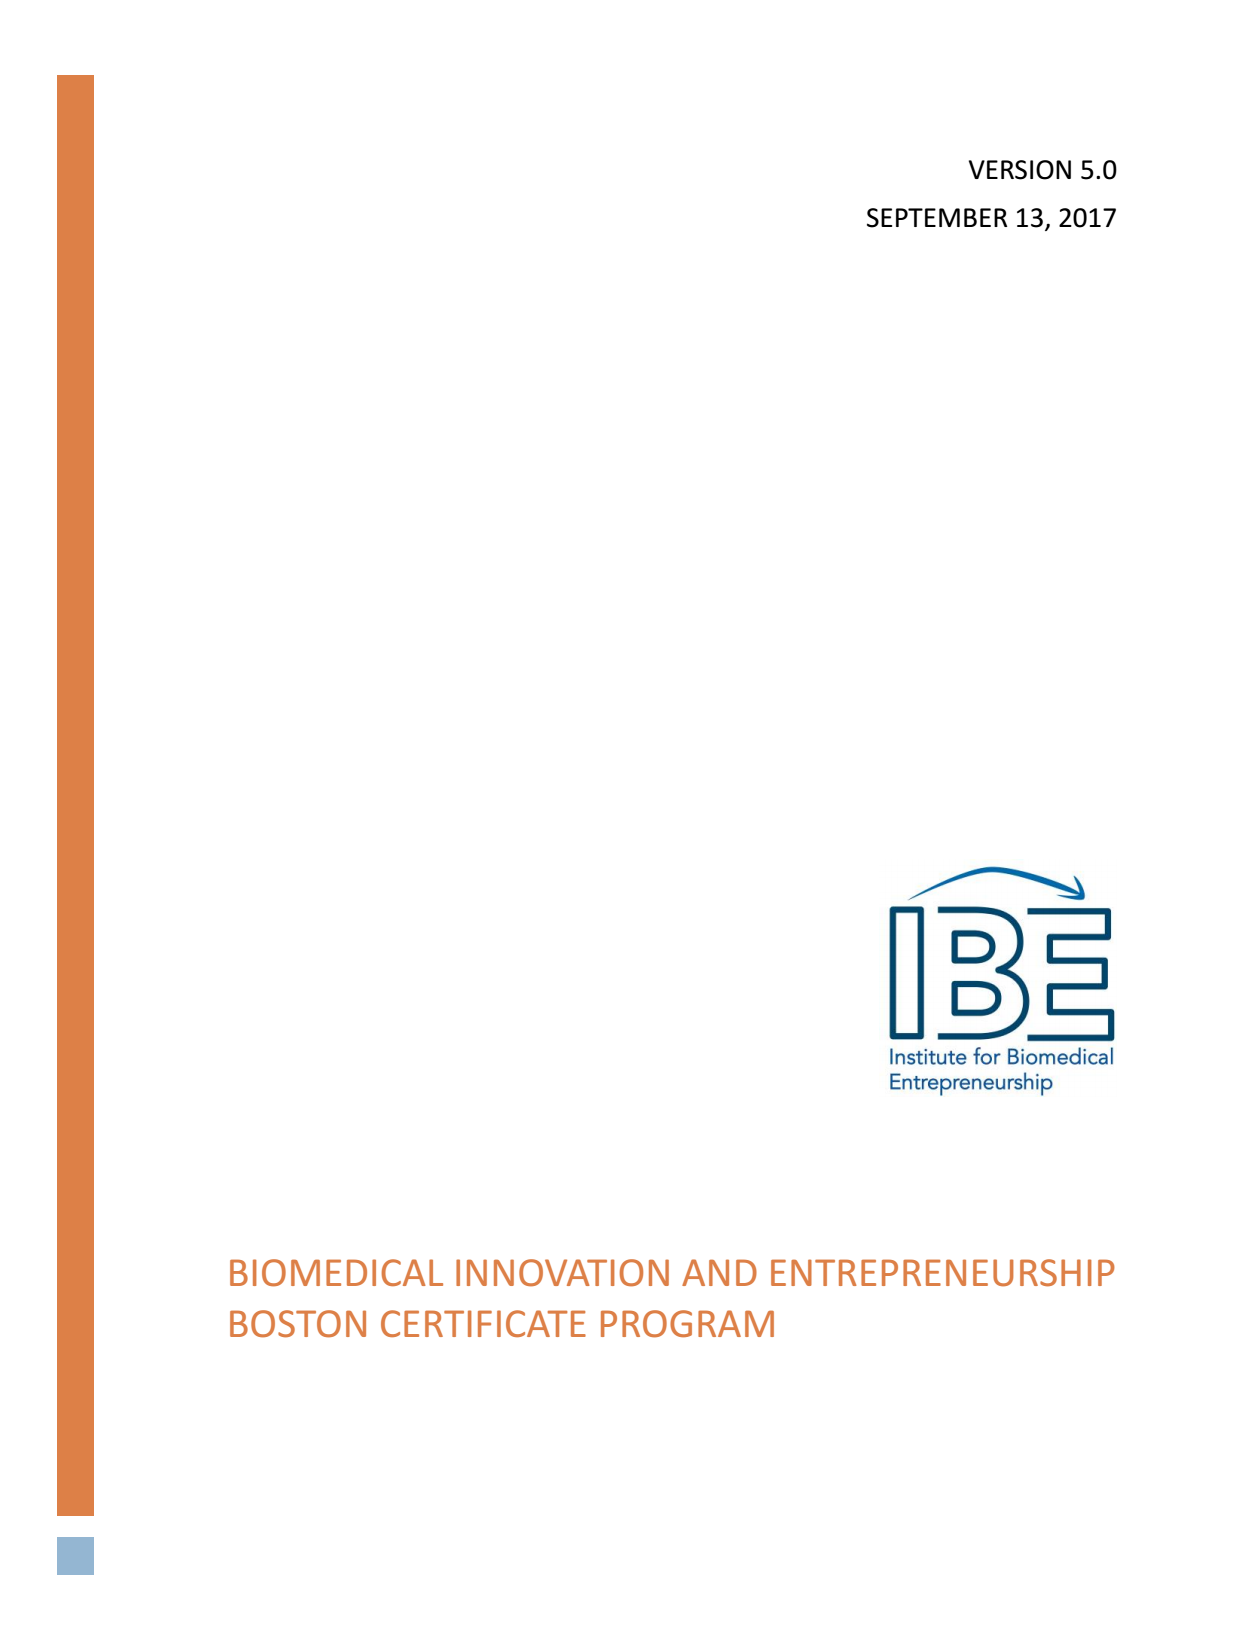 Ibe boston course information.pdfpjqkbg6phhj1eavjaejg